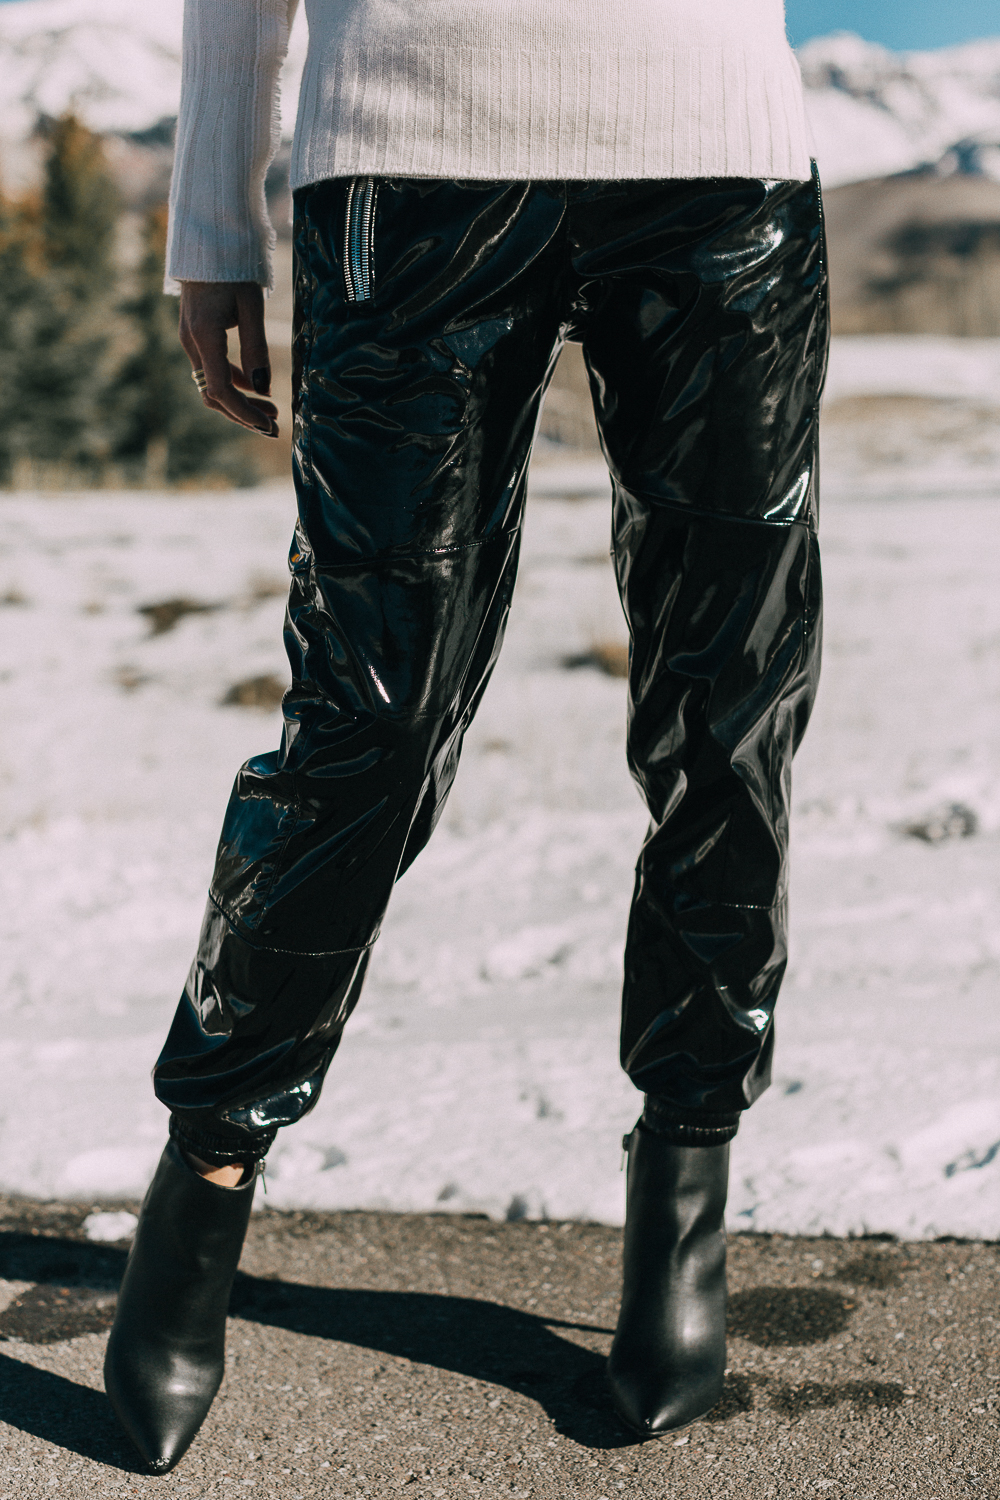 Black vinyl pants by RtA on Fashion blogger over 40 Erin Busbee with black booties by Michael Kors and a white cashmere sweater by Brochu Walker